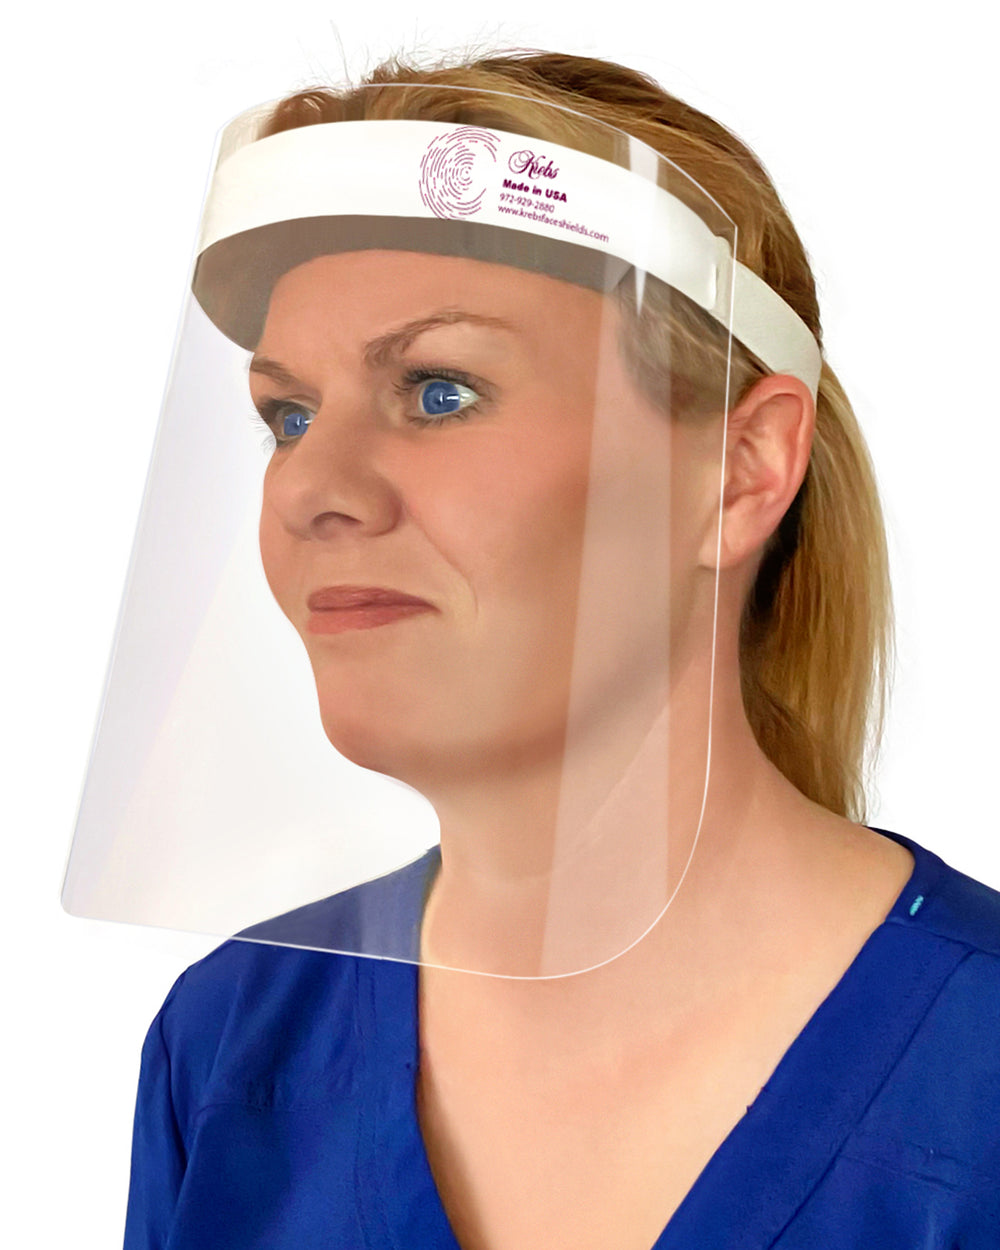 2-Pack Lightweight Safety Medical Face Shields - Anti-Fog, Anti-Static, Hypoallergenic